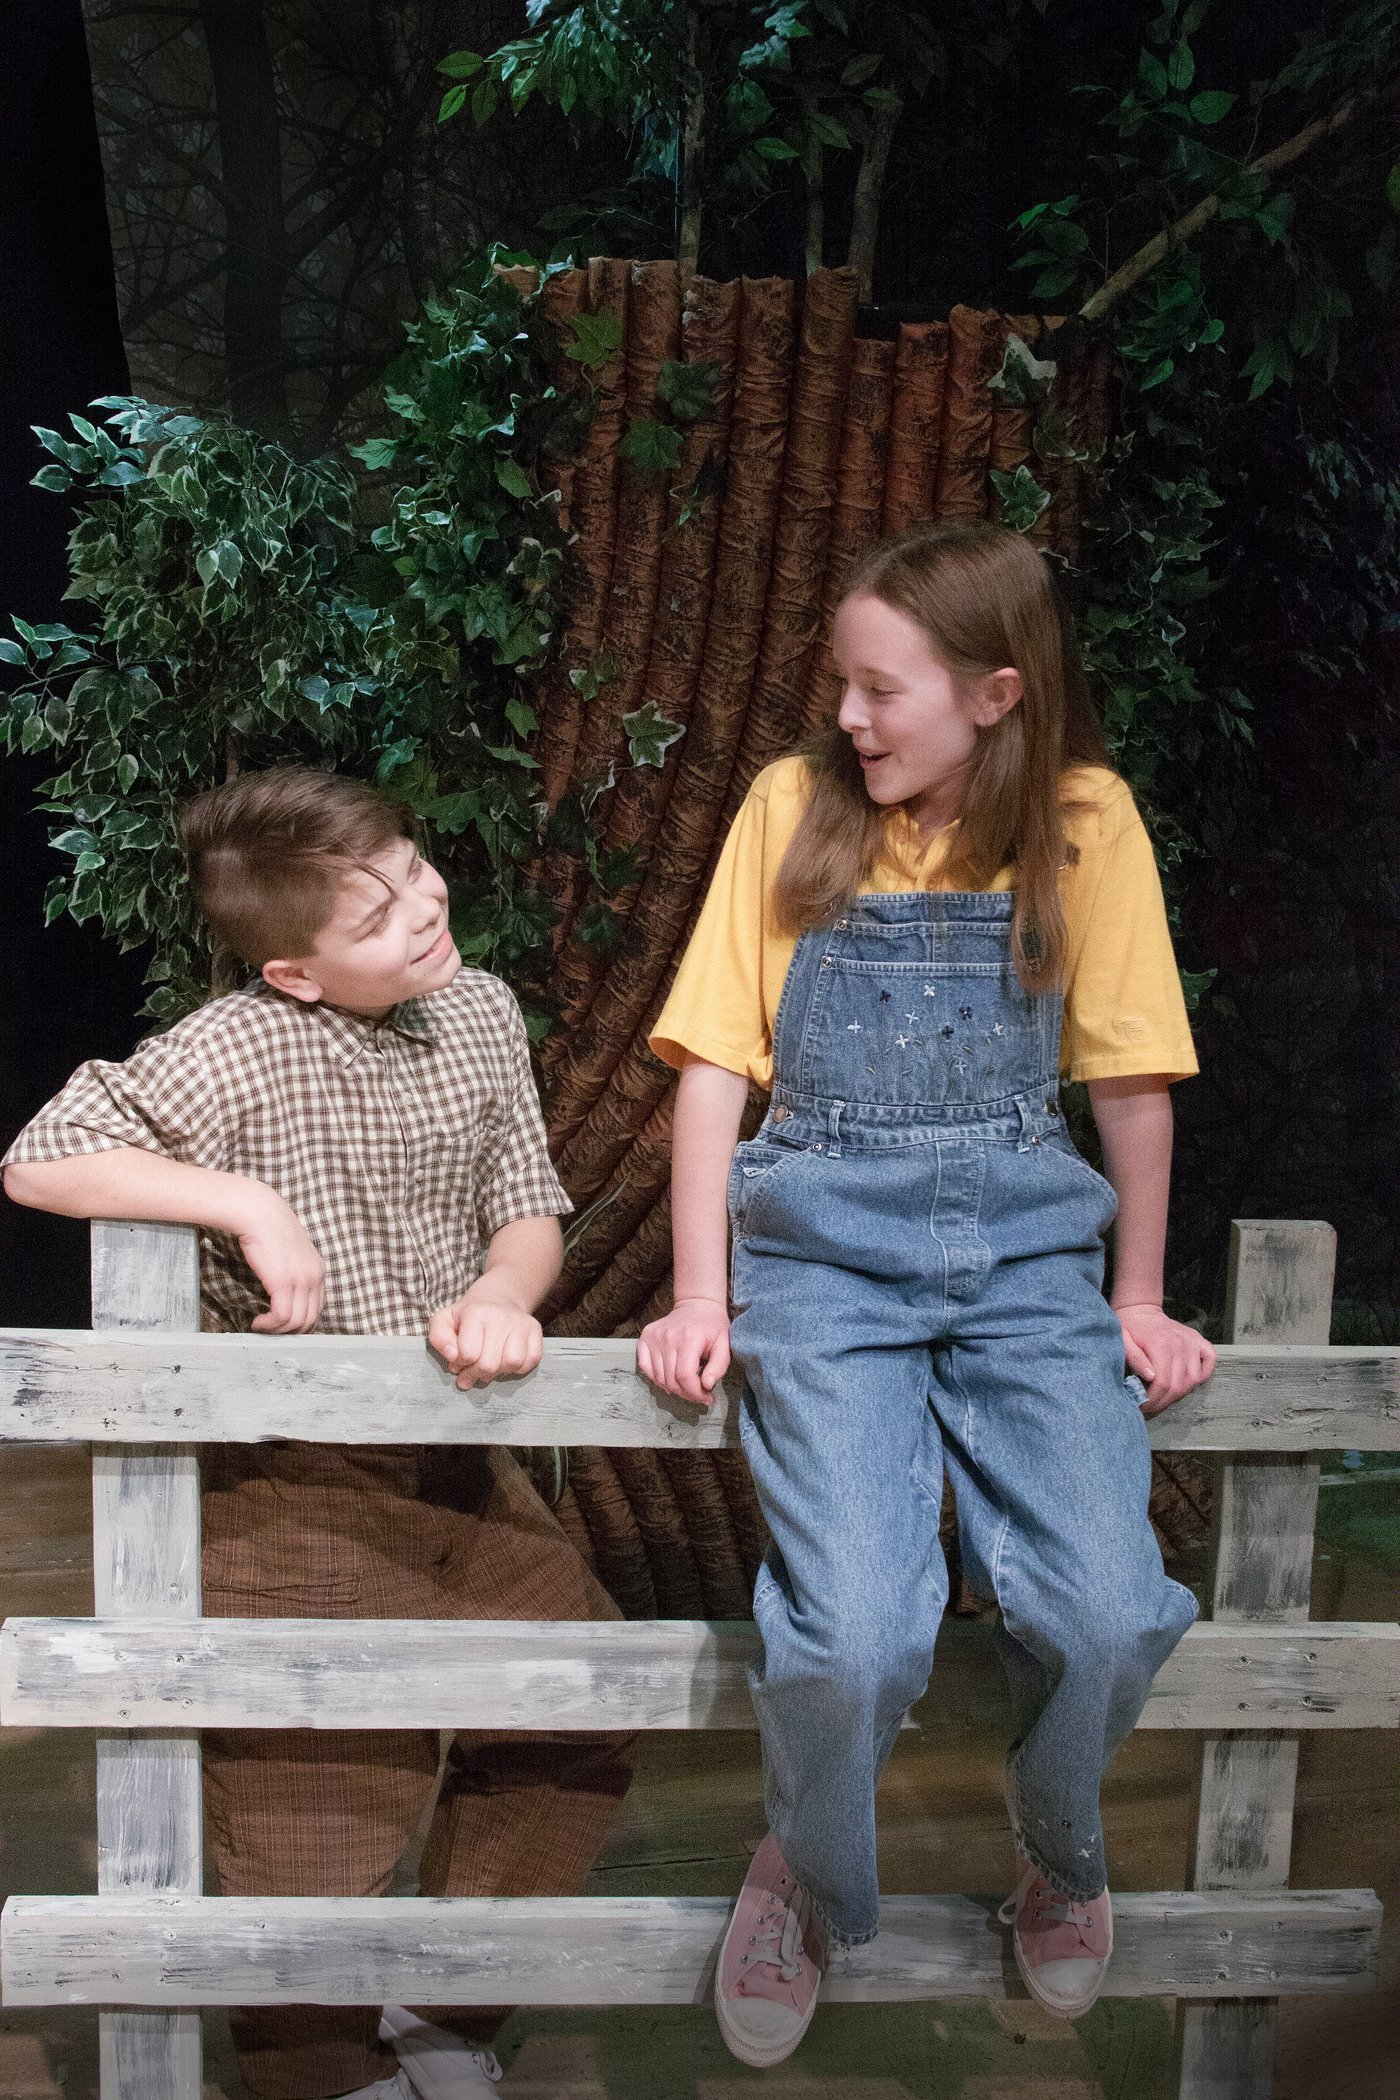 BWW Interview: Kevin Alvarnaz of BRIDGE TO TERABITHIA at DreamWrights